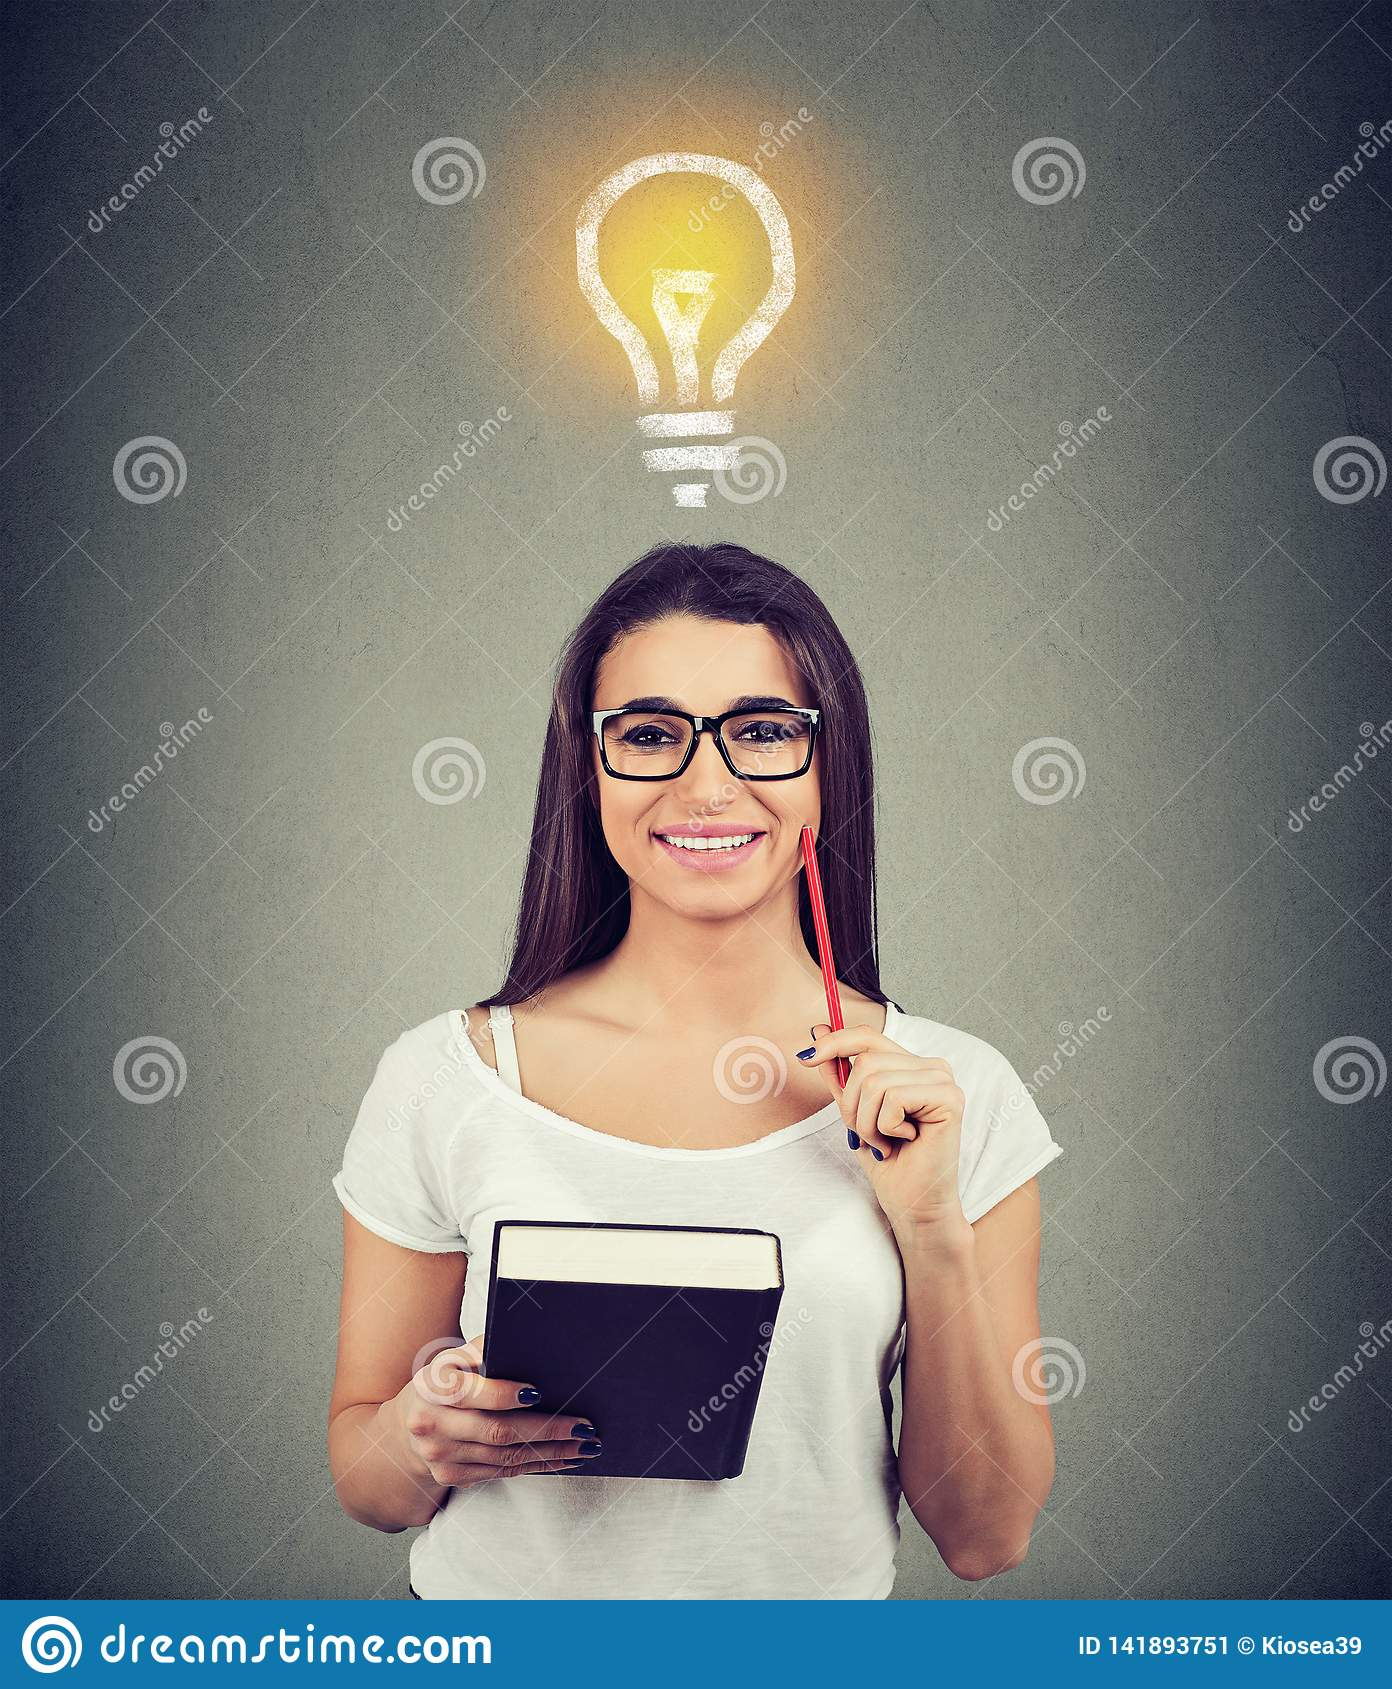 Portrait of a beautiful woman with bright light bulb above head holding a book